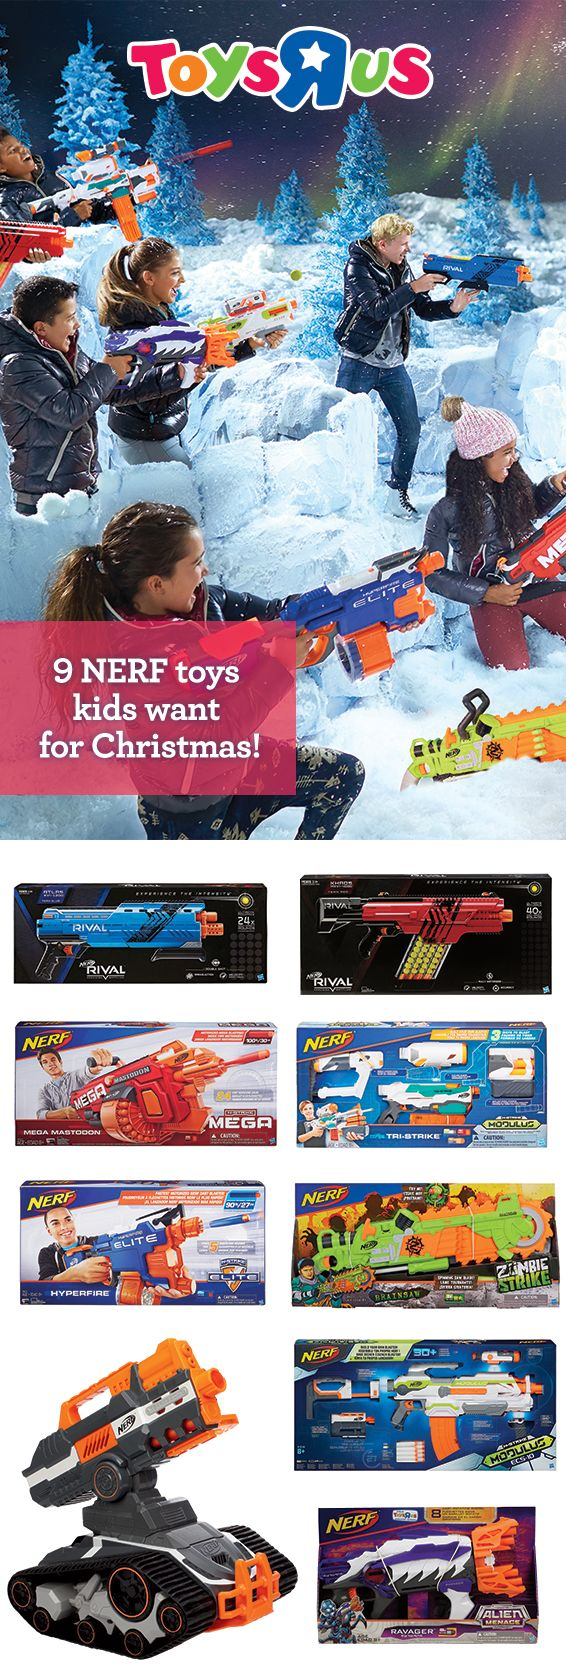 "What a blast! With so many blasters and accessories to choose from, like the N-Strike Mega Mastodon and Rival Khaos MXVI 4000 in our NERF Shop, it's no wonder we're the destination for NERF Nation! And remember, if you're looking for the super hot N-Strike Elite Terrascout RC Drone or super cool Alien Menace collection, they're only at Toys ""R""Us!"